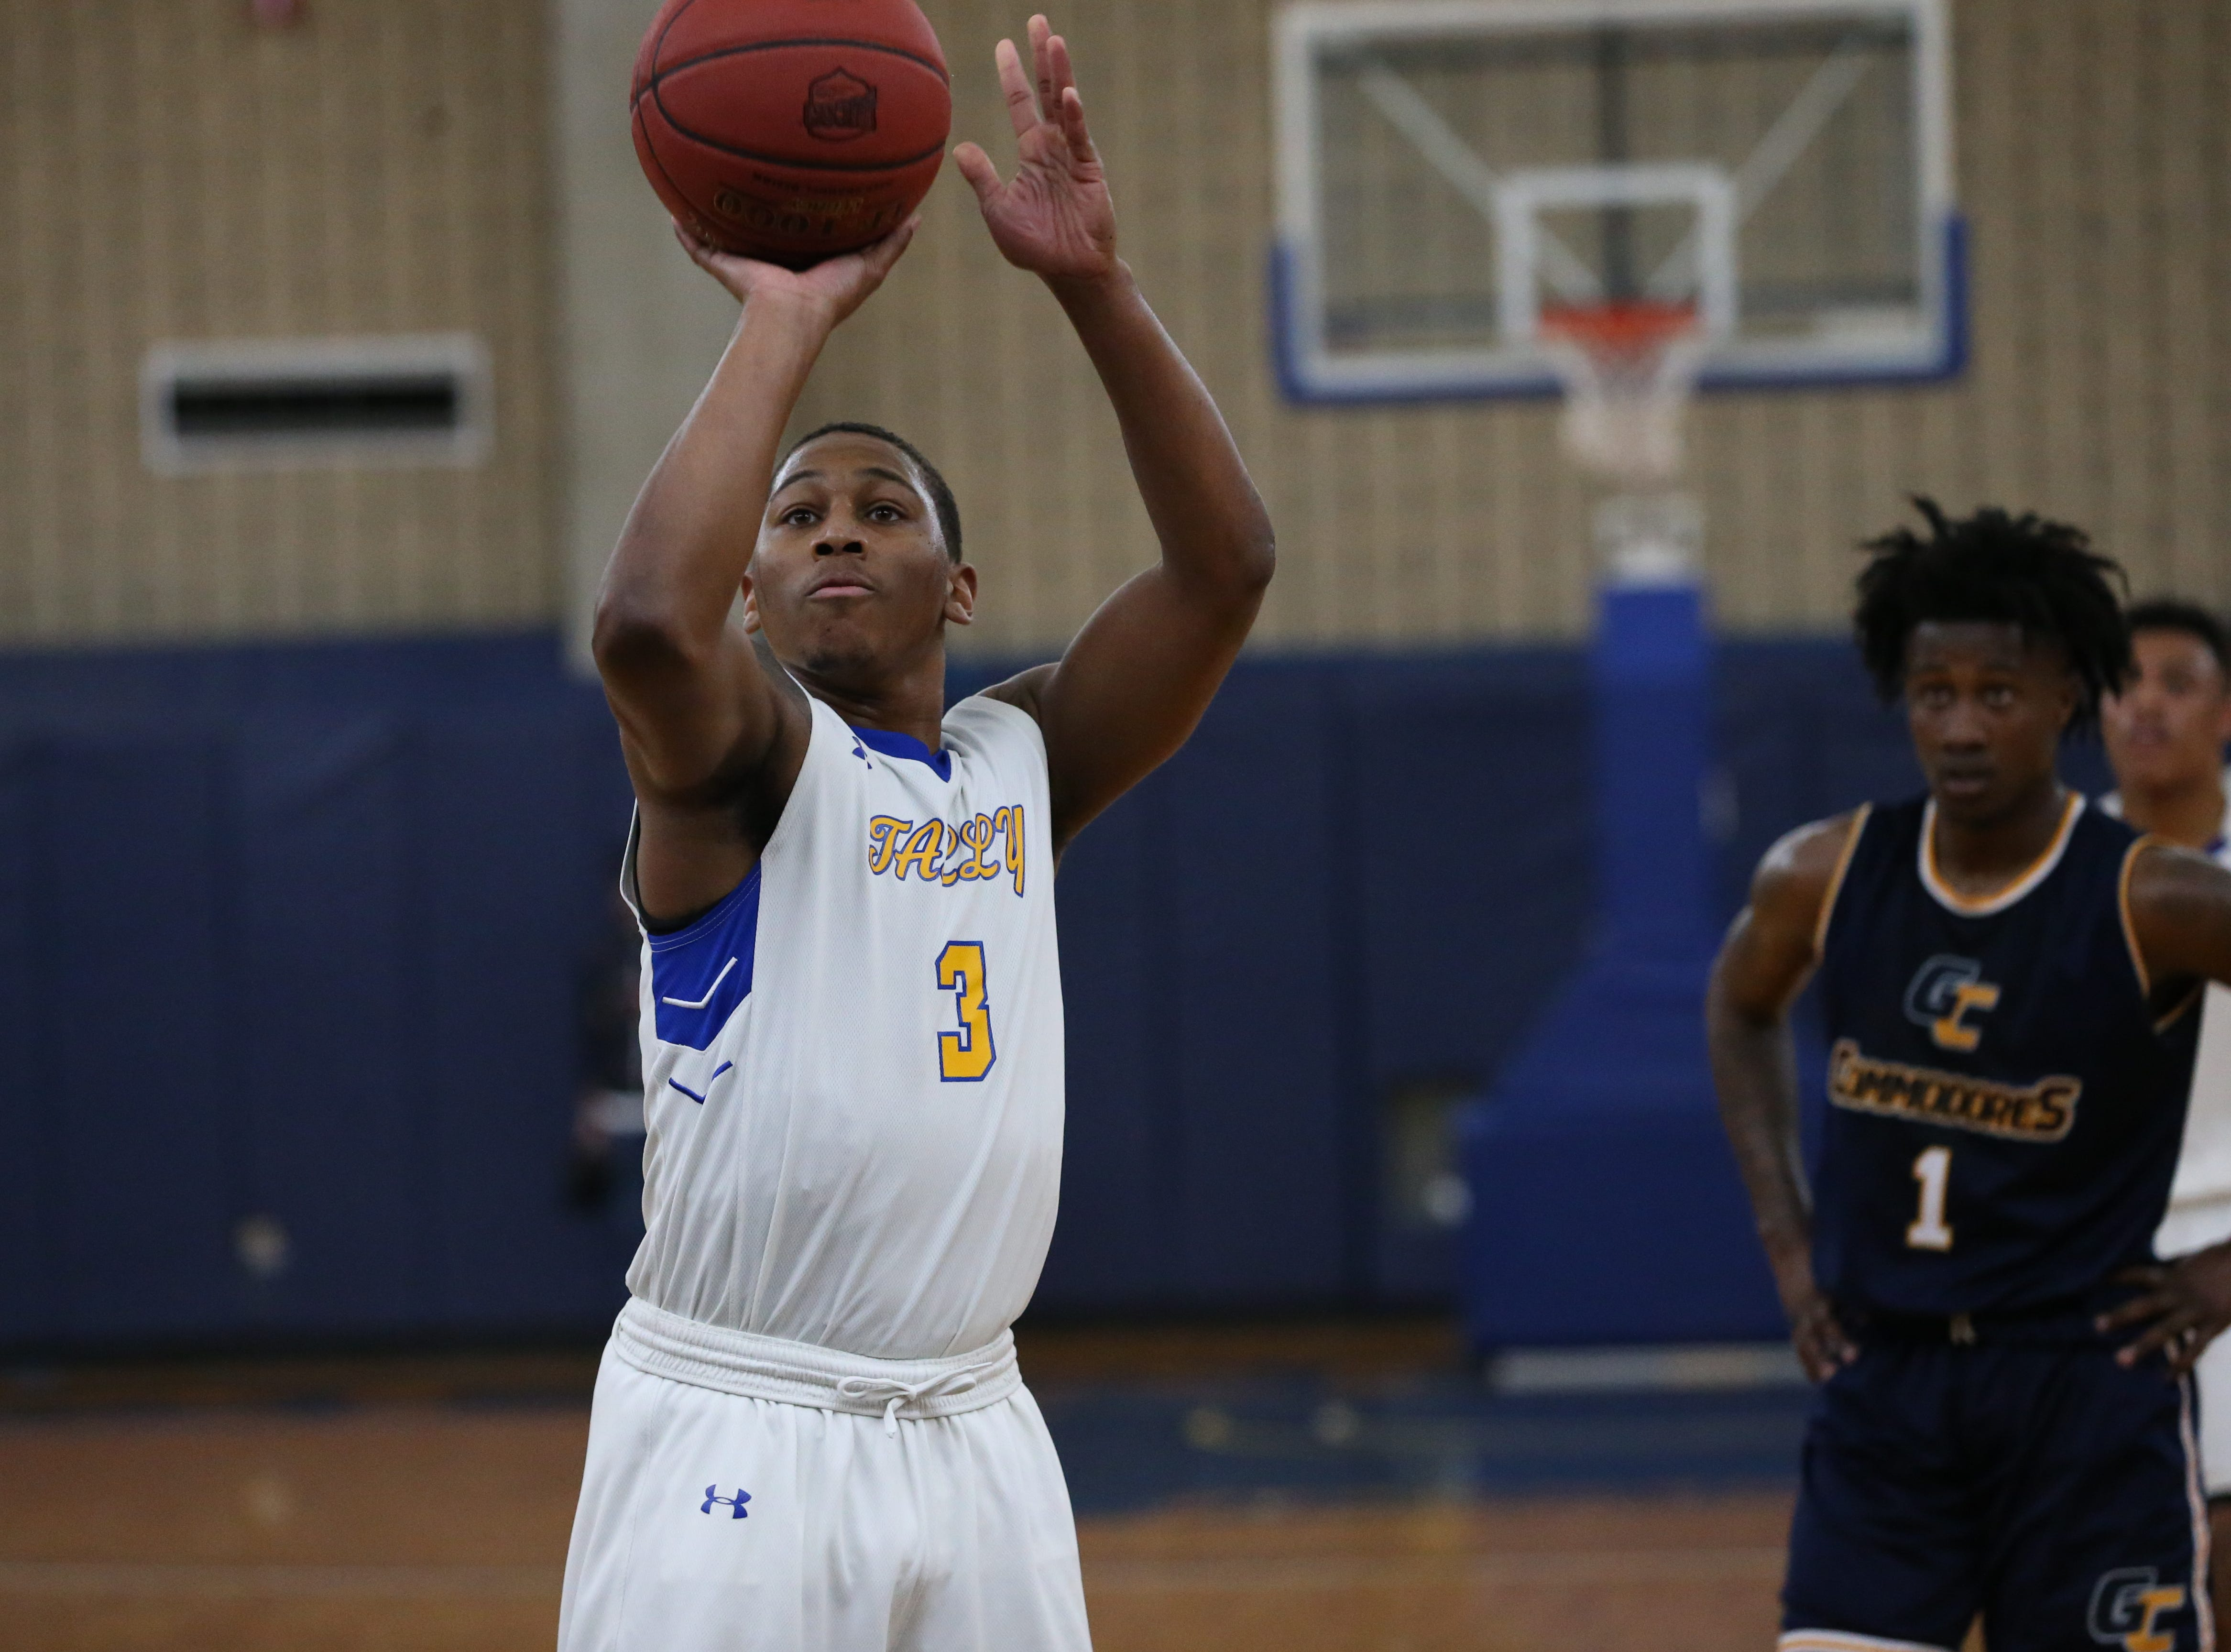 Tallahassee Community College Eagles guard Mustafa Lawrence (3) shoots a free throw. The Tallahassee Community College Eagles host the Gulf Coast State College Commodores in a conference match-up in the Eagledome, Saturday, Jan. 5, 2019.